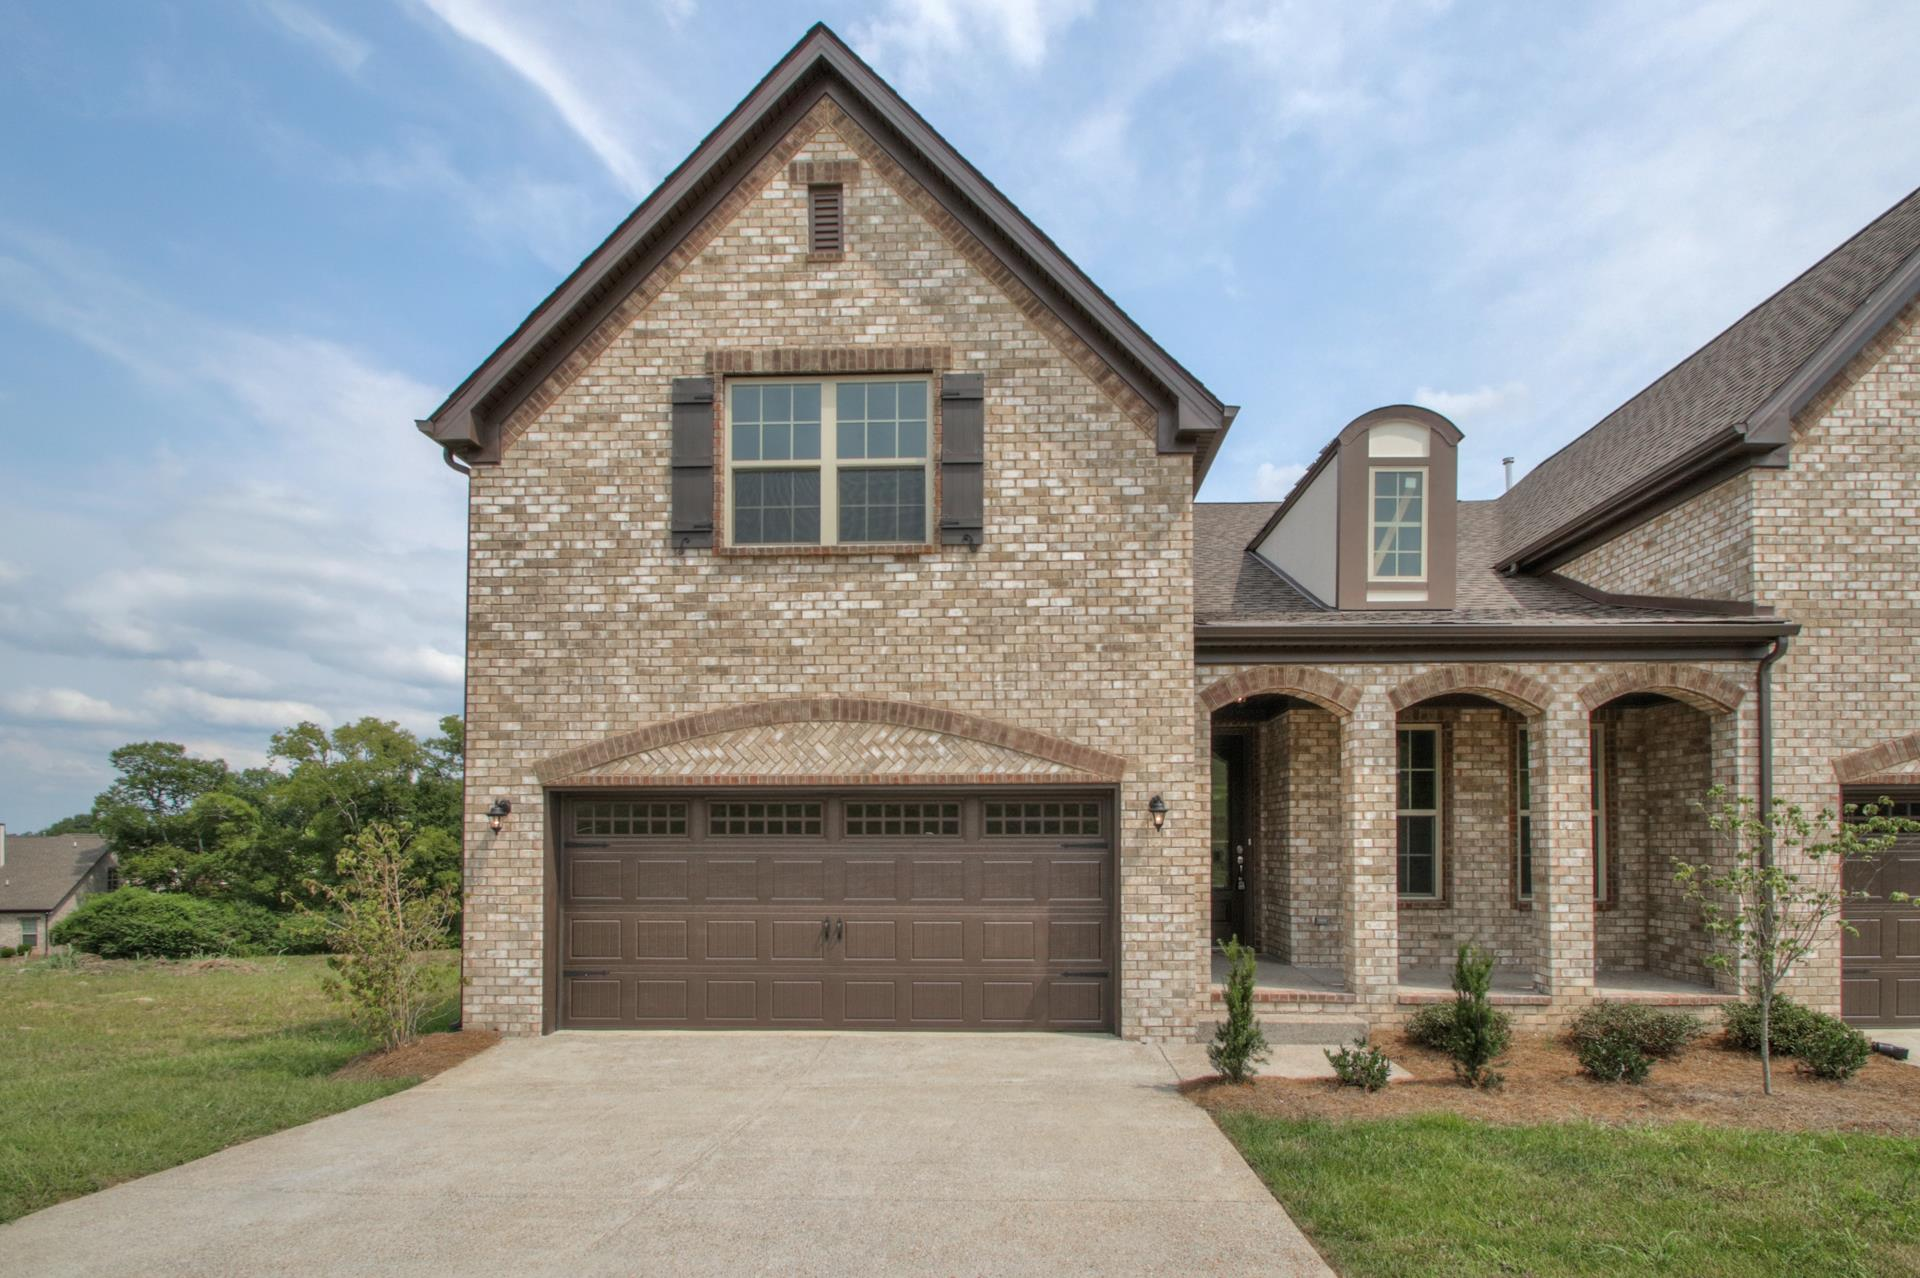 162 Village Circle, Lebanon in Wilson County County, TN 37087 Home for Sale